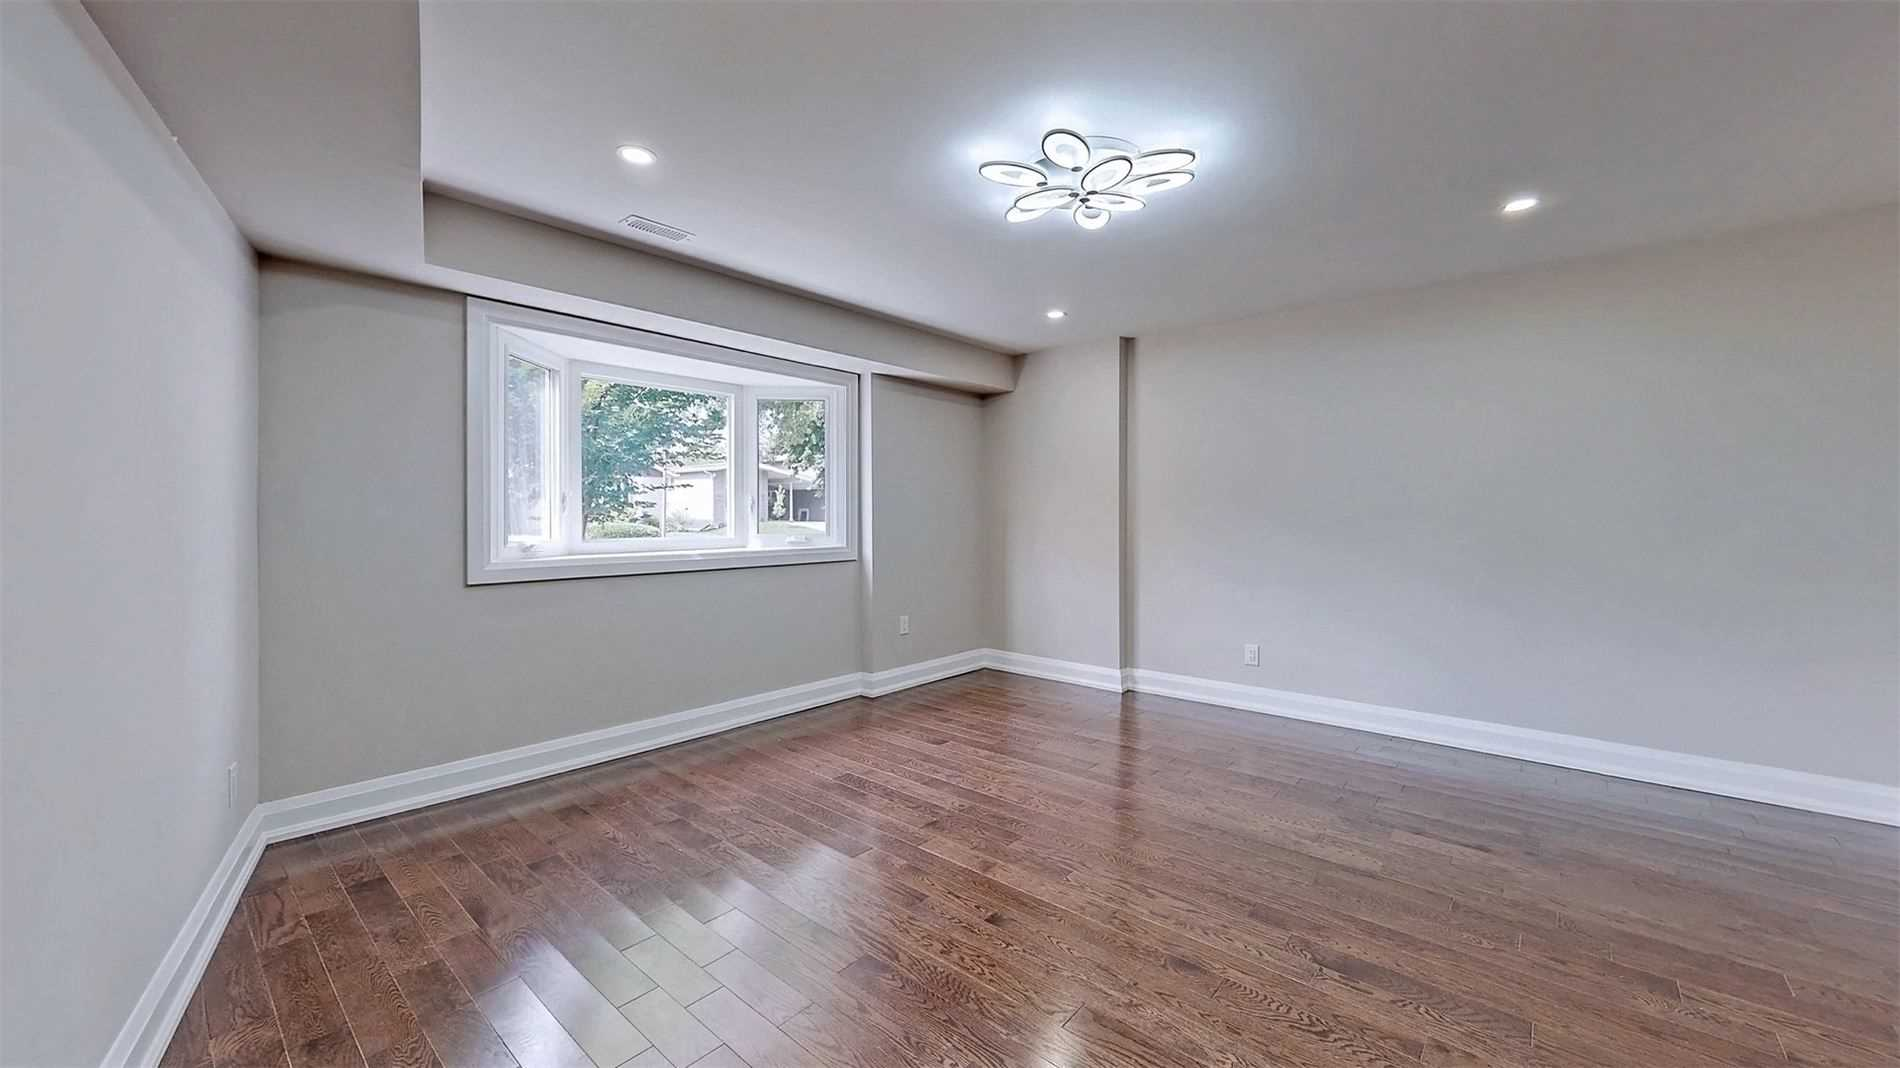 Detached house For Sale In Toronto - 35 Lyncroft Dr, Toronto, Ontario, Canada M1E1X6 , 3 Bedrooms Bedrooms, ,5 BathroomsBathrooms,Detached,For Sale,Lyncroft